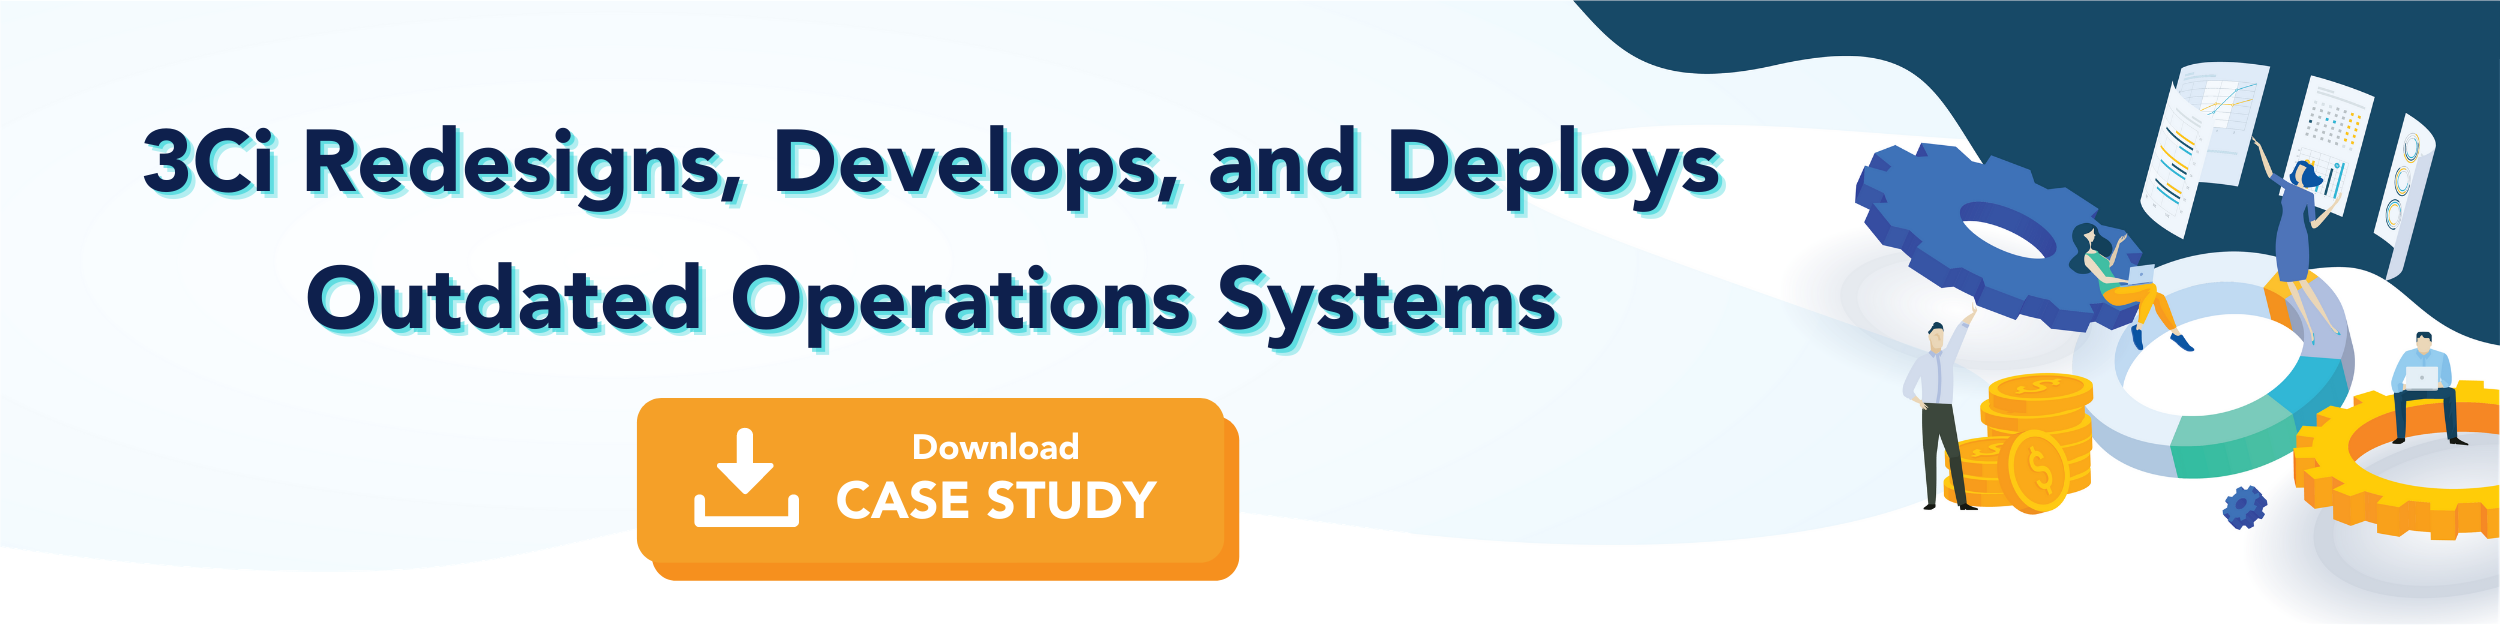 3Ci Redesigns, Develops, and Deploys Outdated Operations Systems